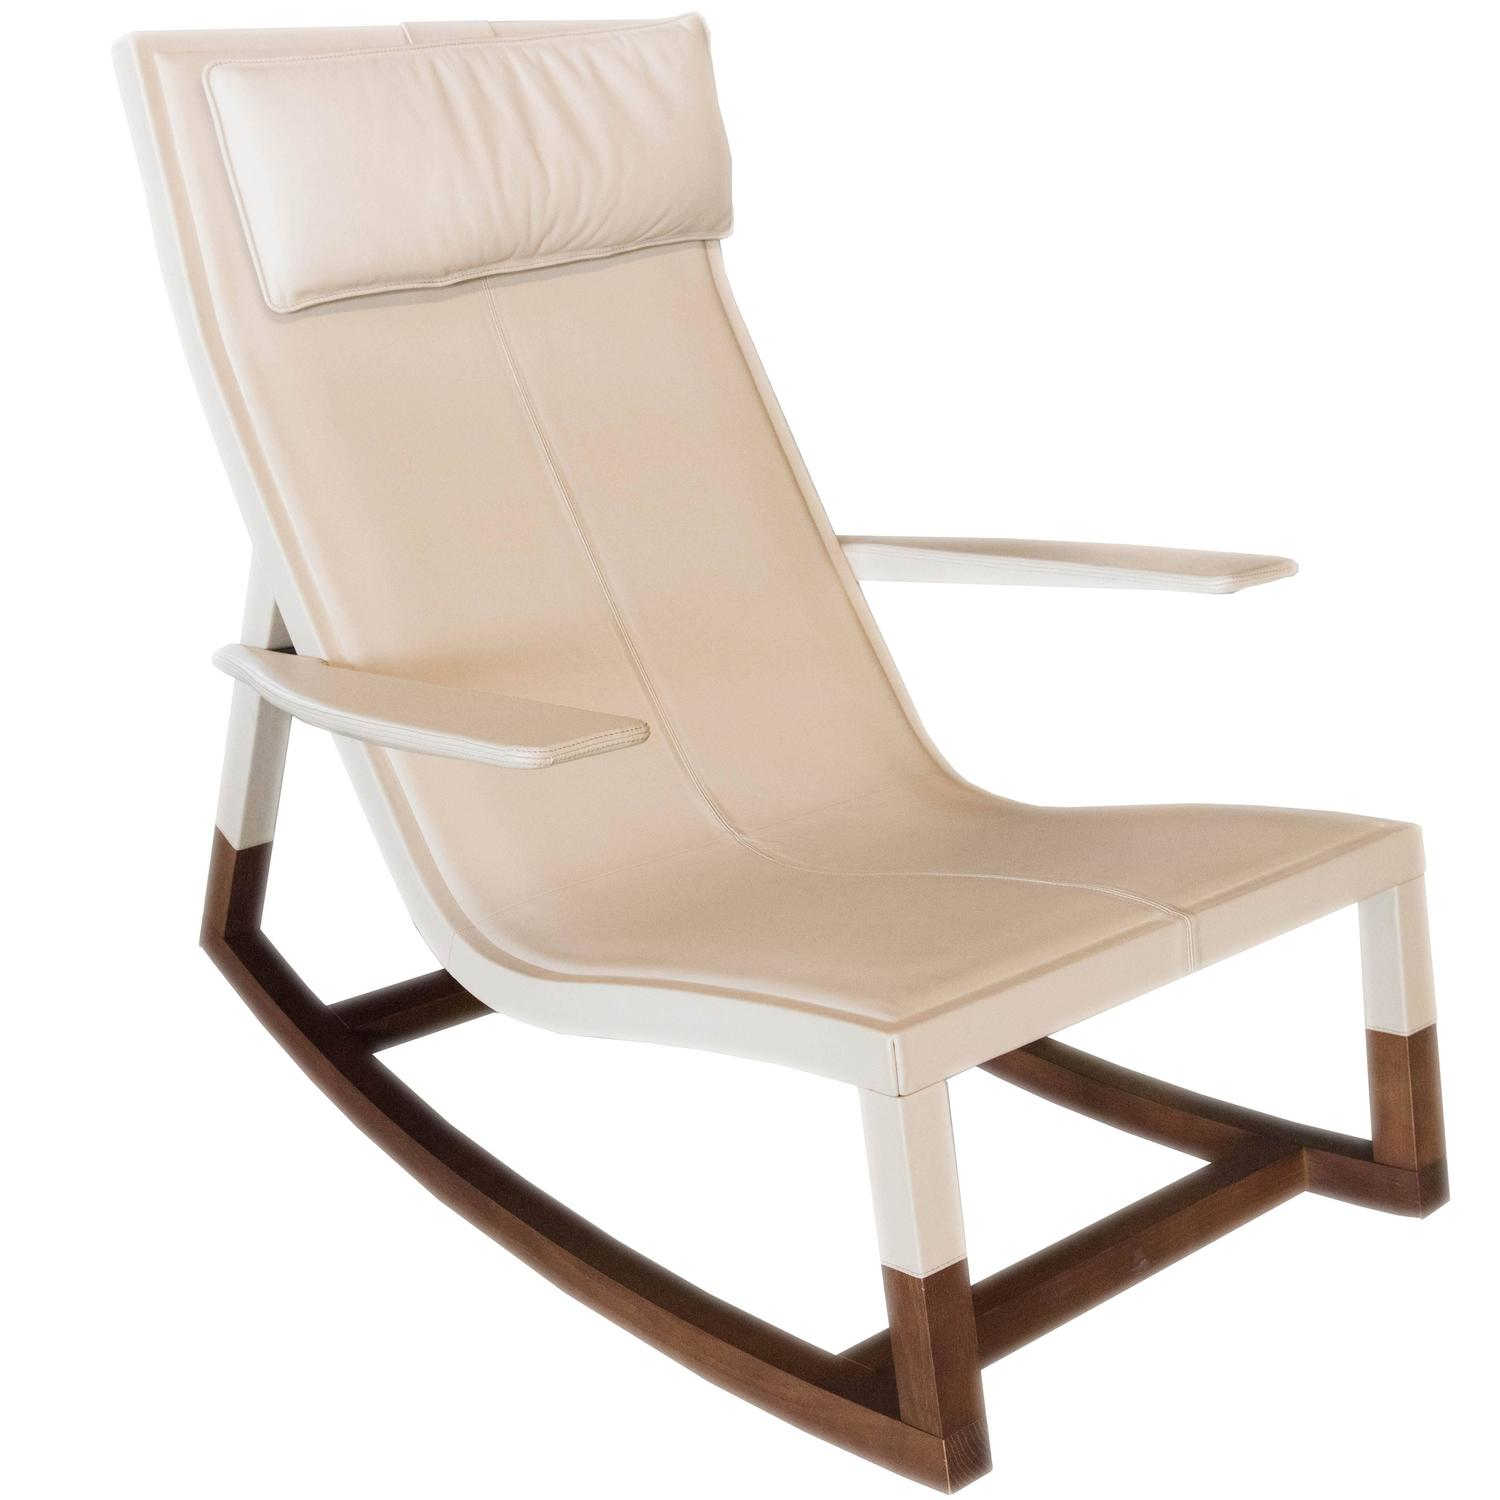 chair modern rocking on white shutterstock isolated stock photo image background